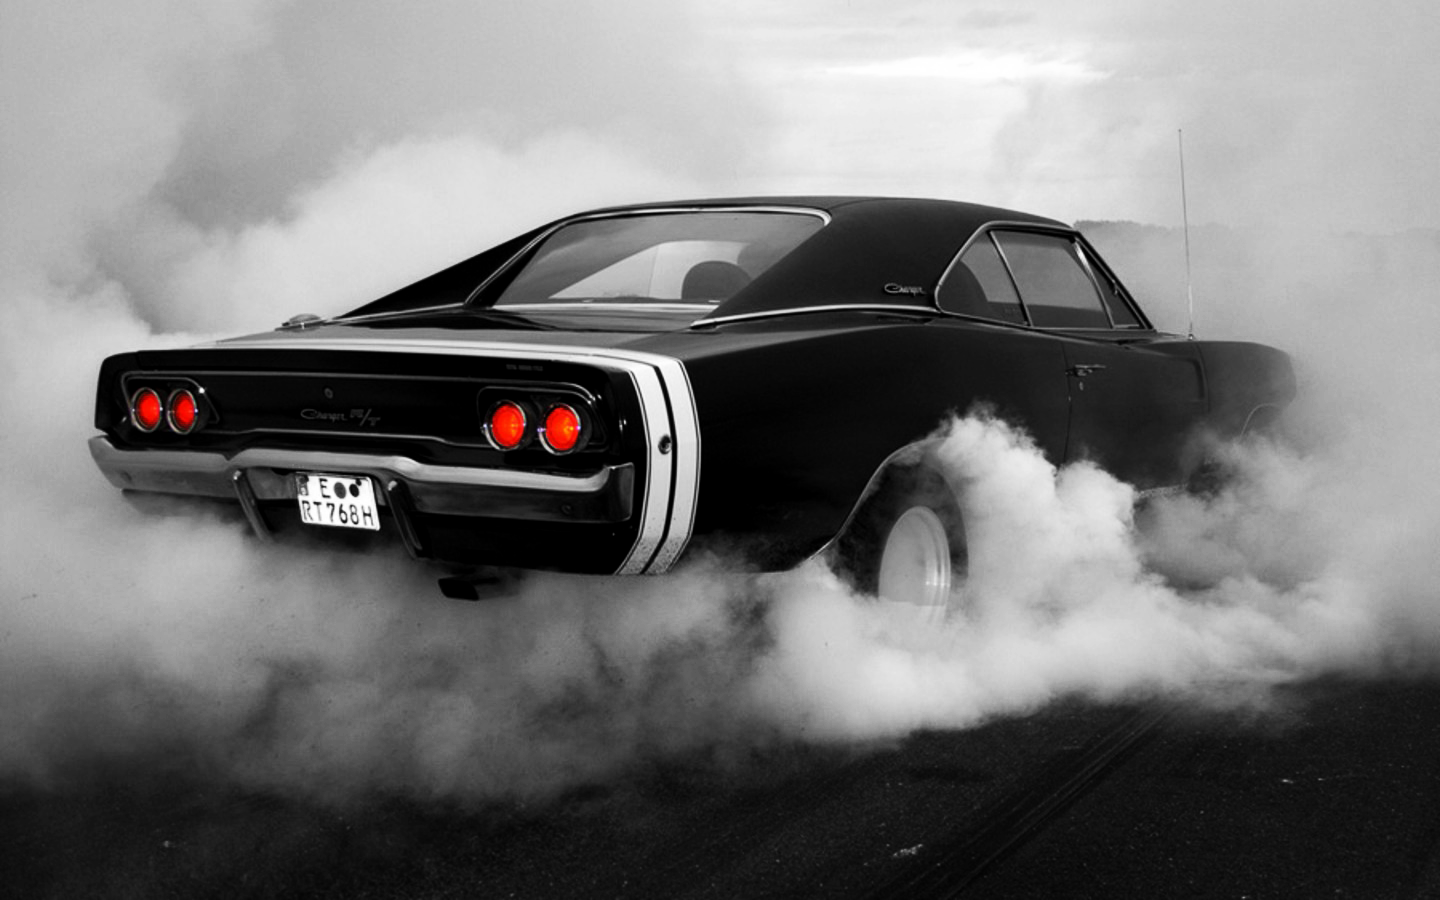 romantic-muscle-car-image-dating-valentines-day-gift-ideas